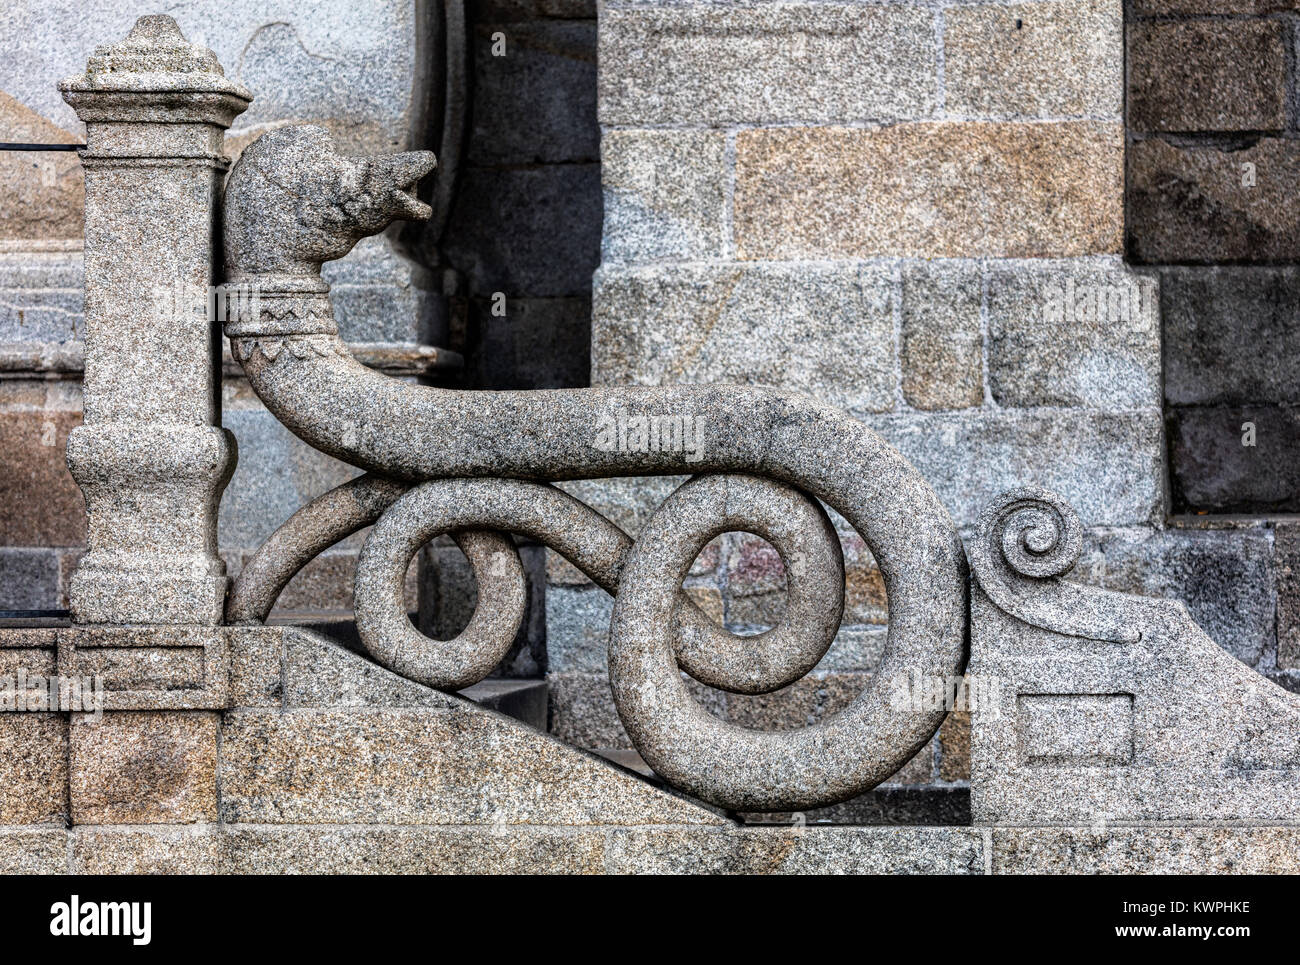 Medieval stone snake balustrade of the Porto cathedral in Porto, Portugal - Stock Image